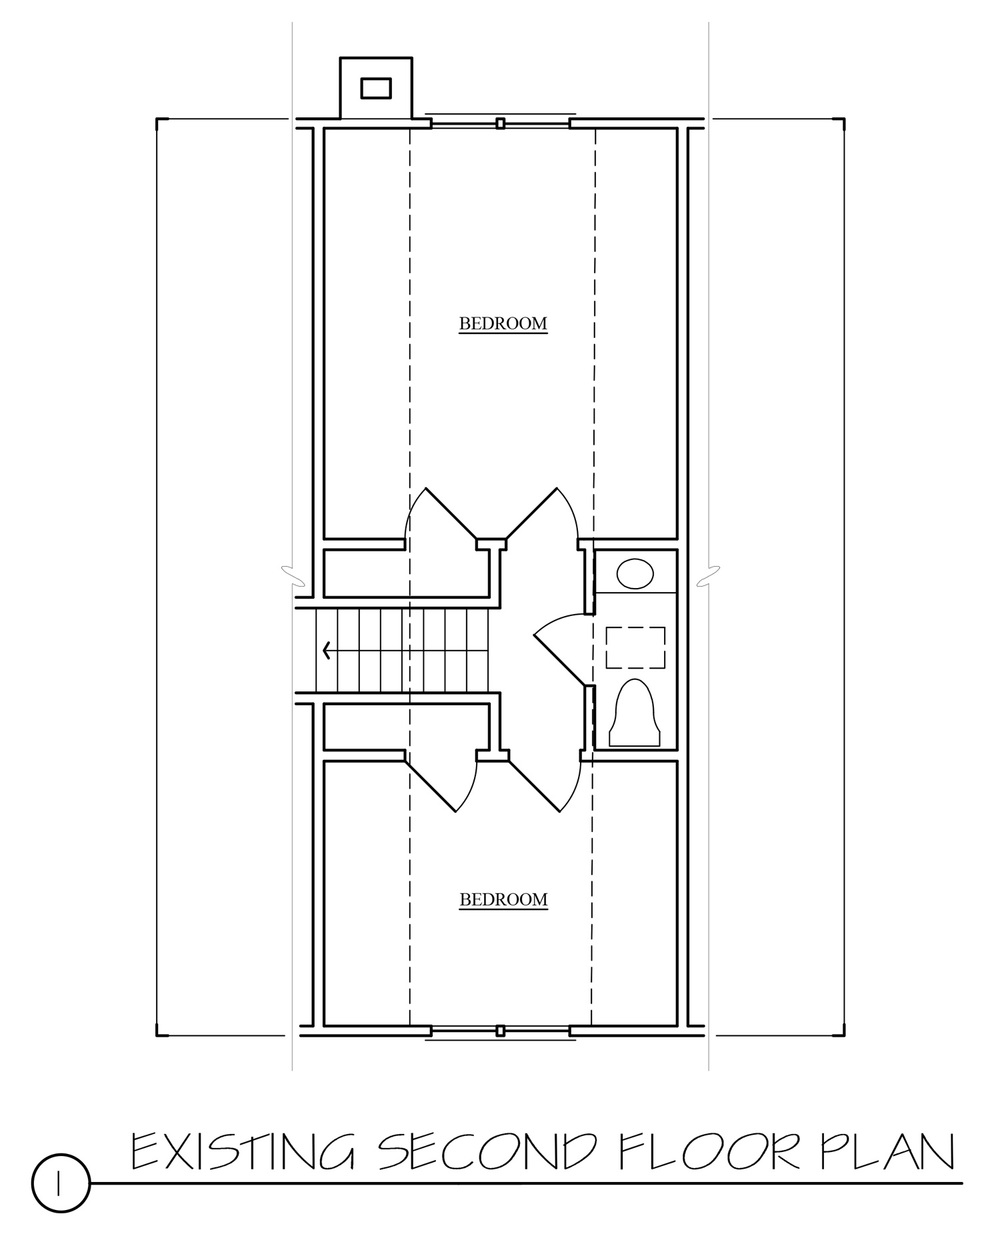 Existing-Second-Floor-Plan.jpg